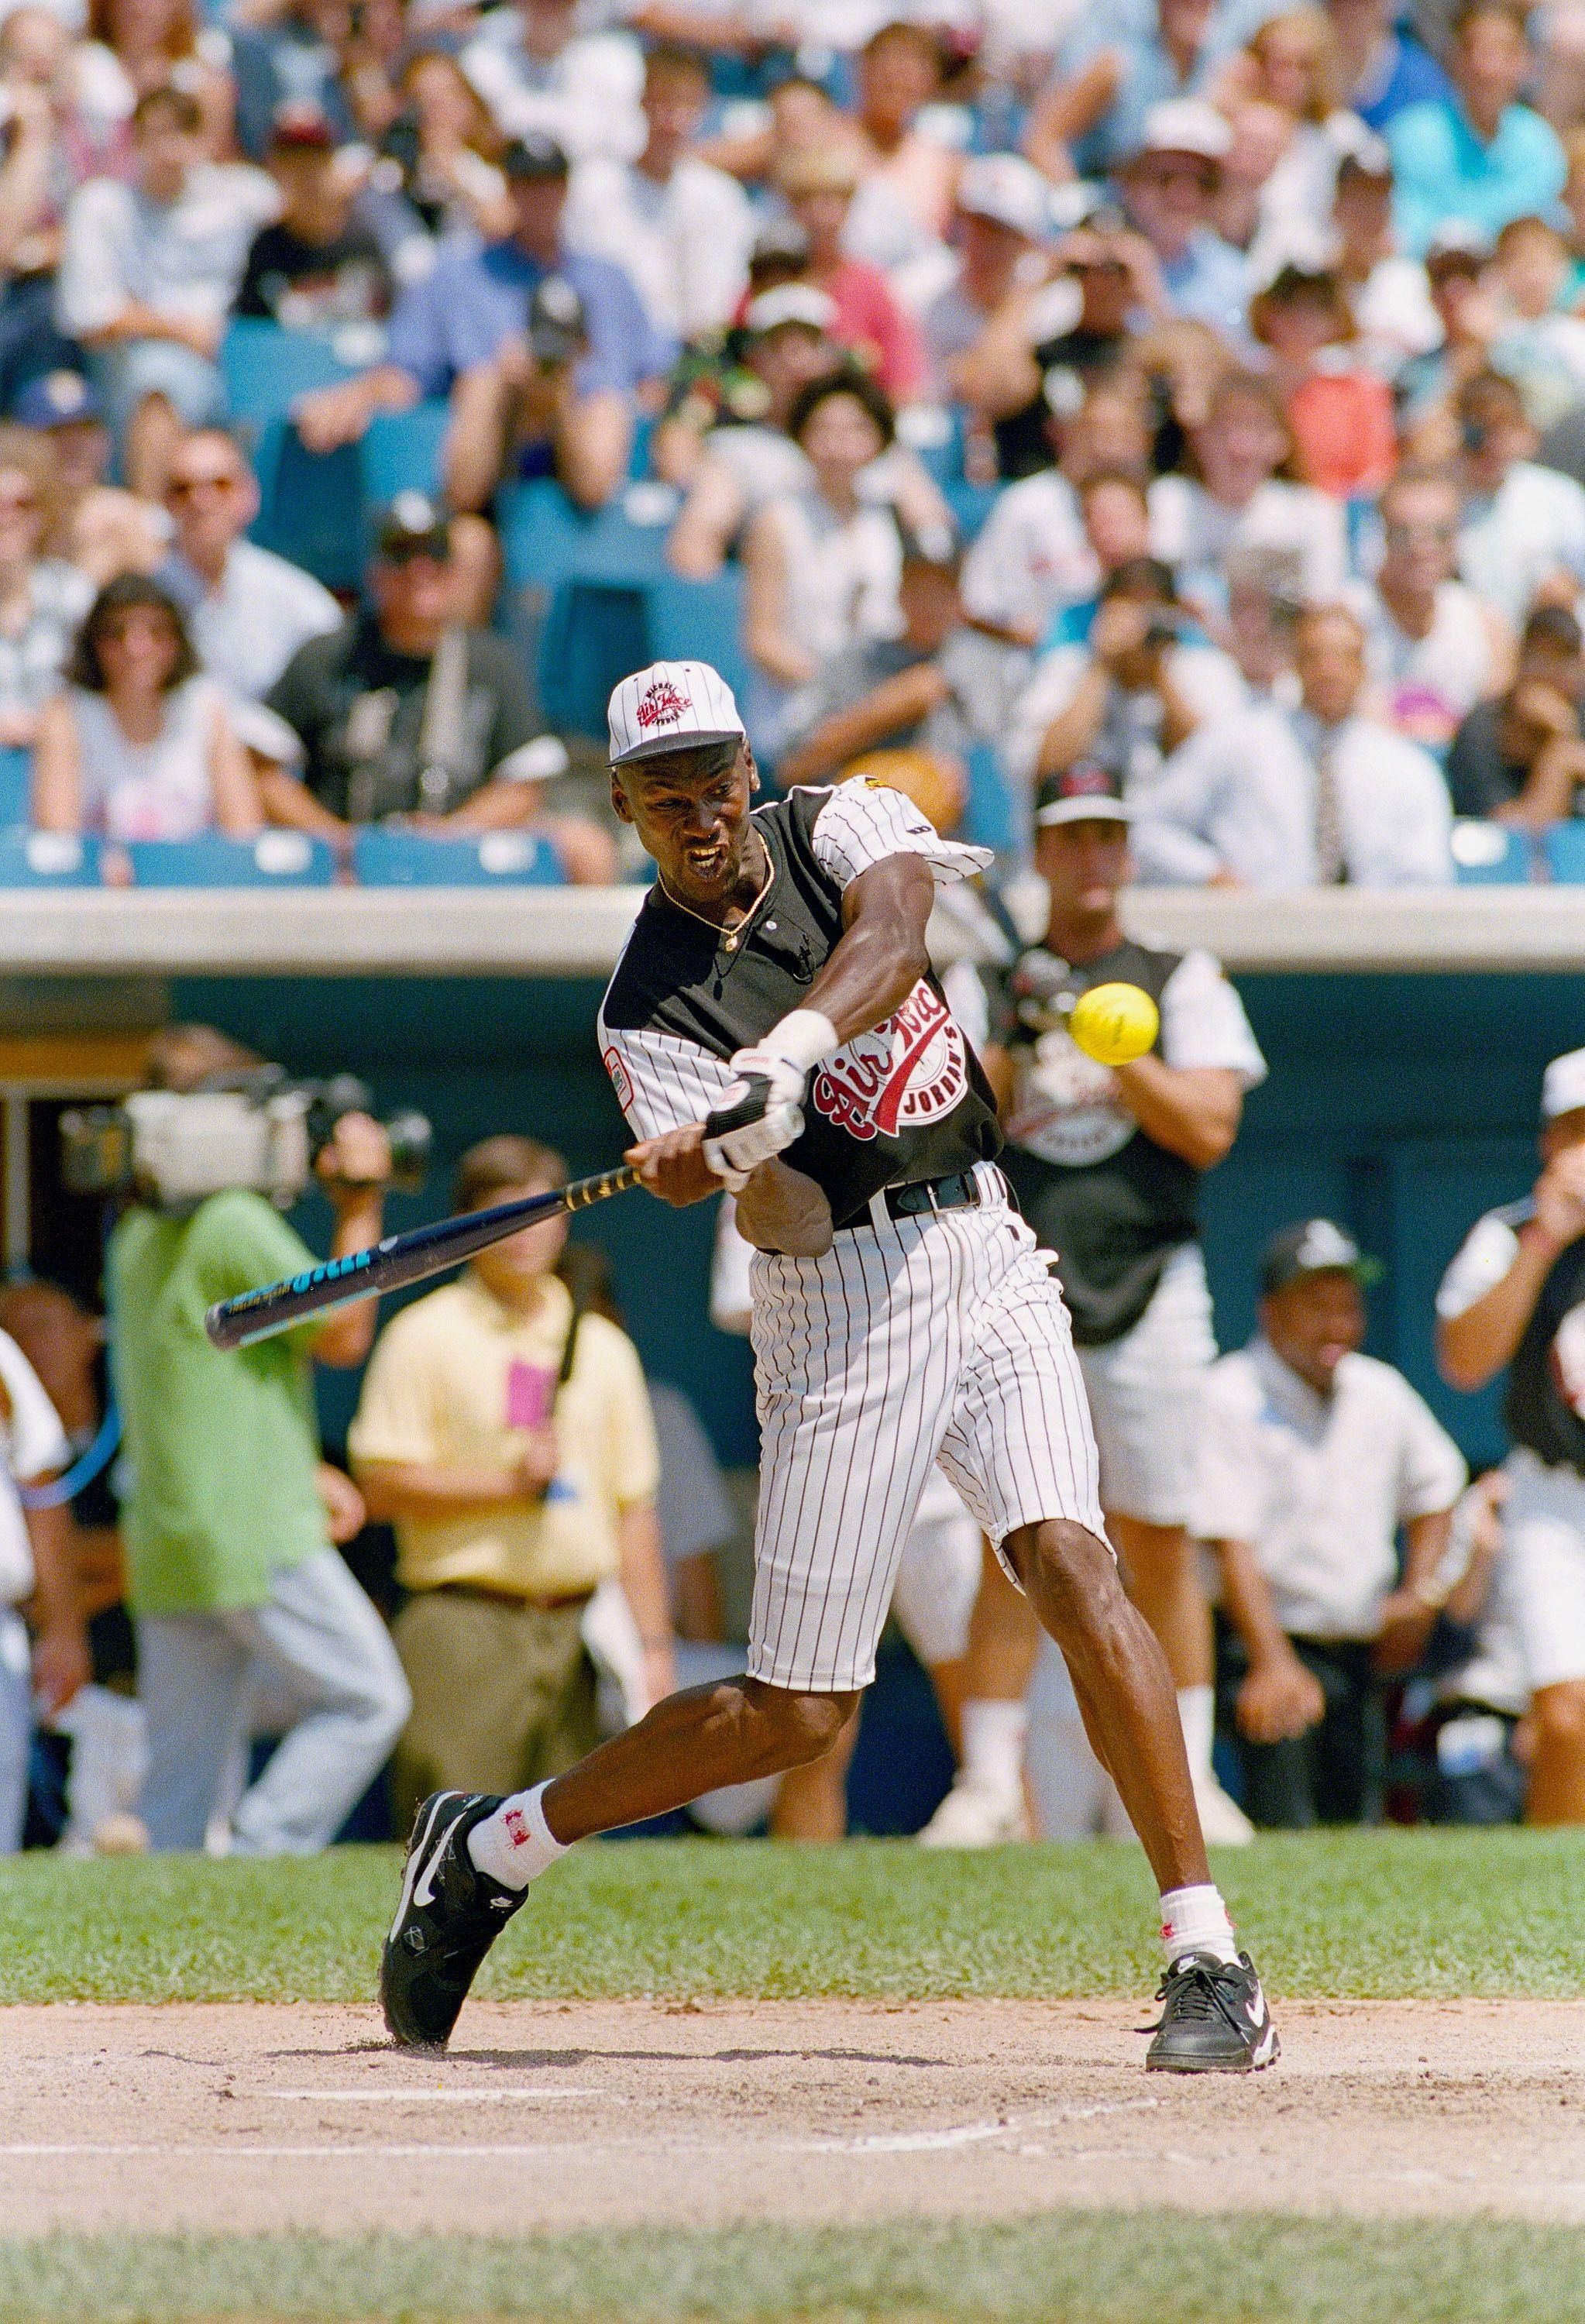 Mandatory Credit: Photo by John Swart/AP/Shutterstock (6564145a) Chicago Bull's basketball player Michael Jordan swings during a celebrity softball game, at Comiskey Park in Chicago. Jordan and a group of his friends played Michael Bolton and his band before the start of the Chicago White Sox and Milwaukee Brewers game Michael Jordan Baseball, Chicago, USA